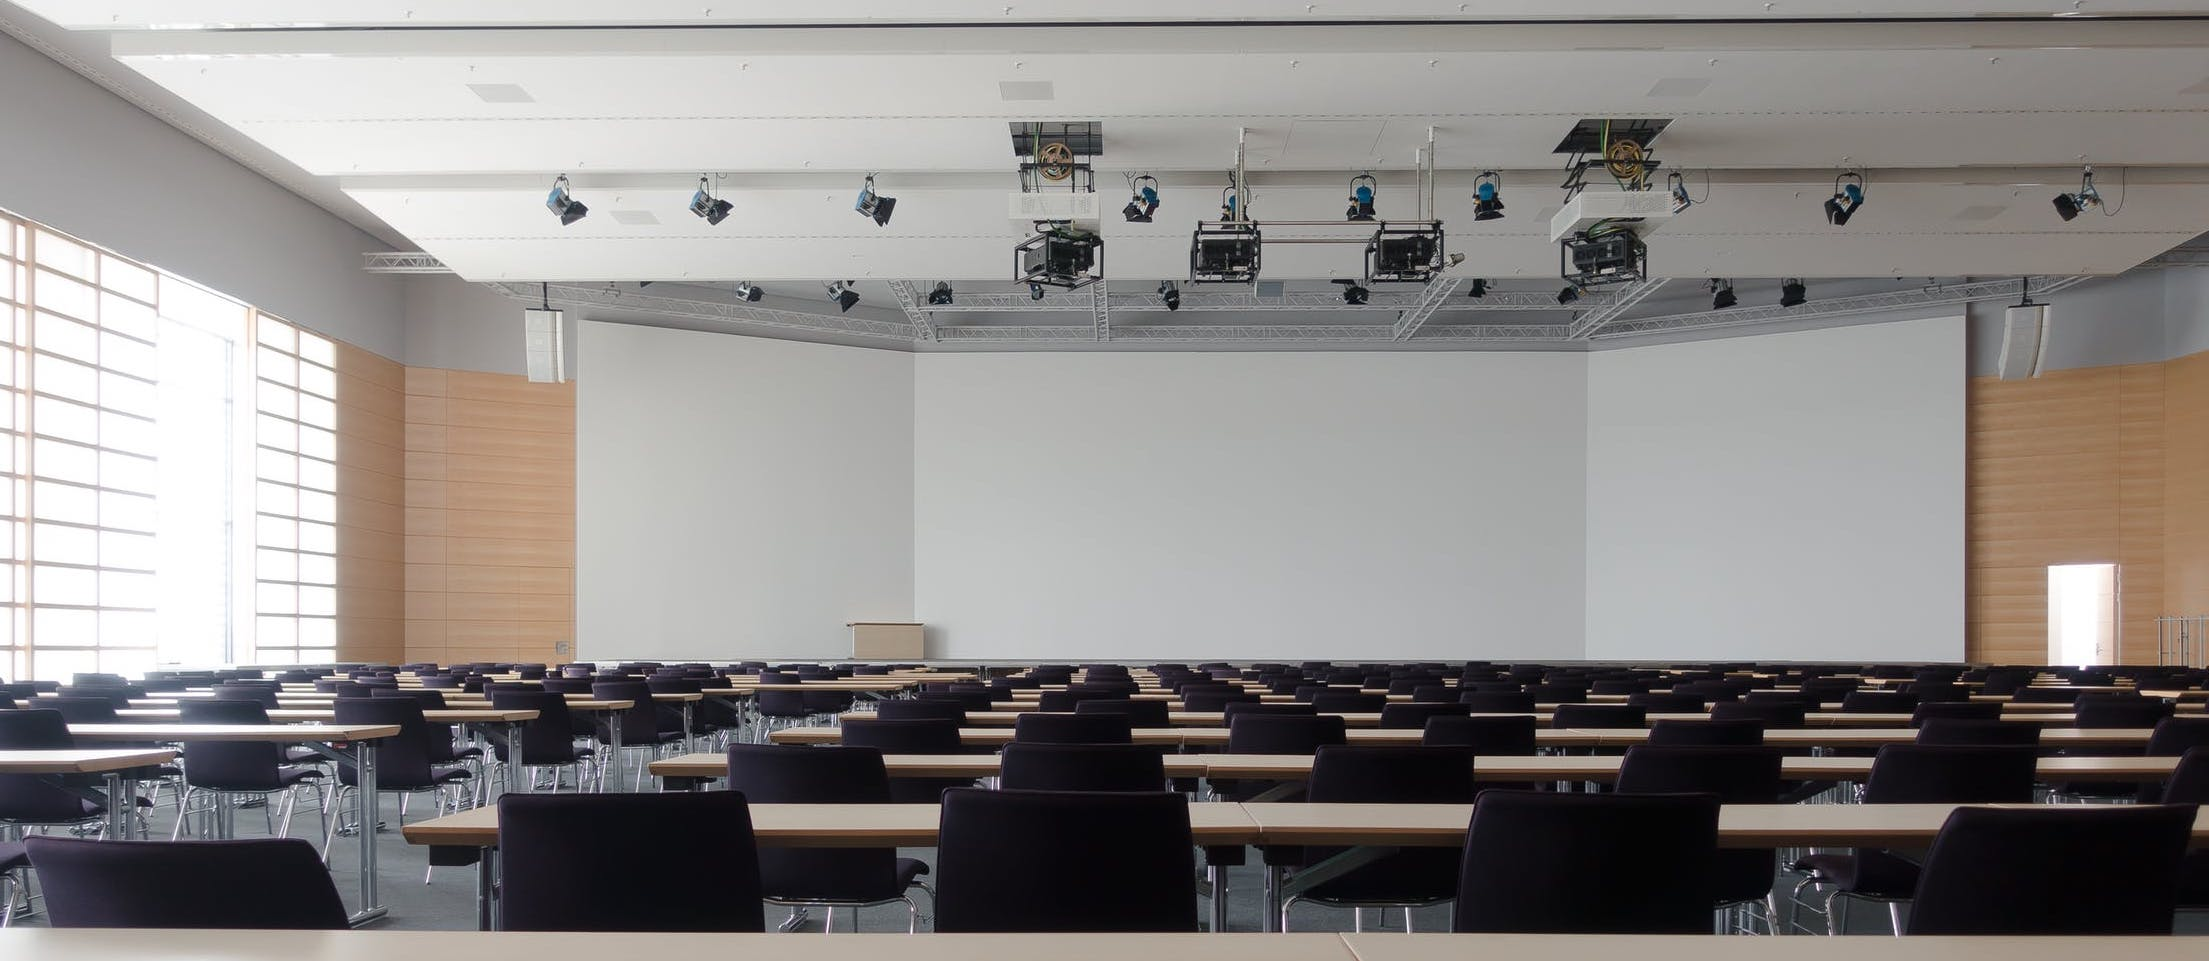 Business school classroom